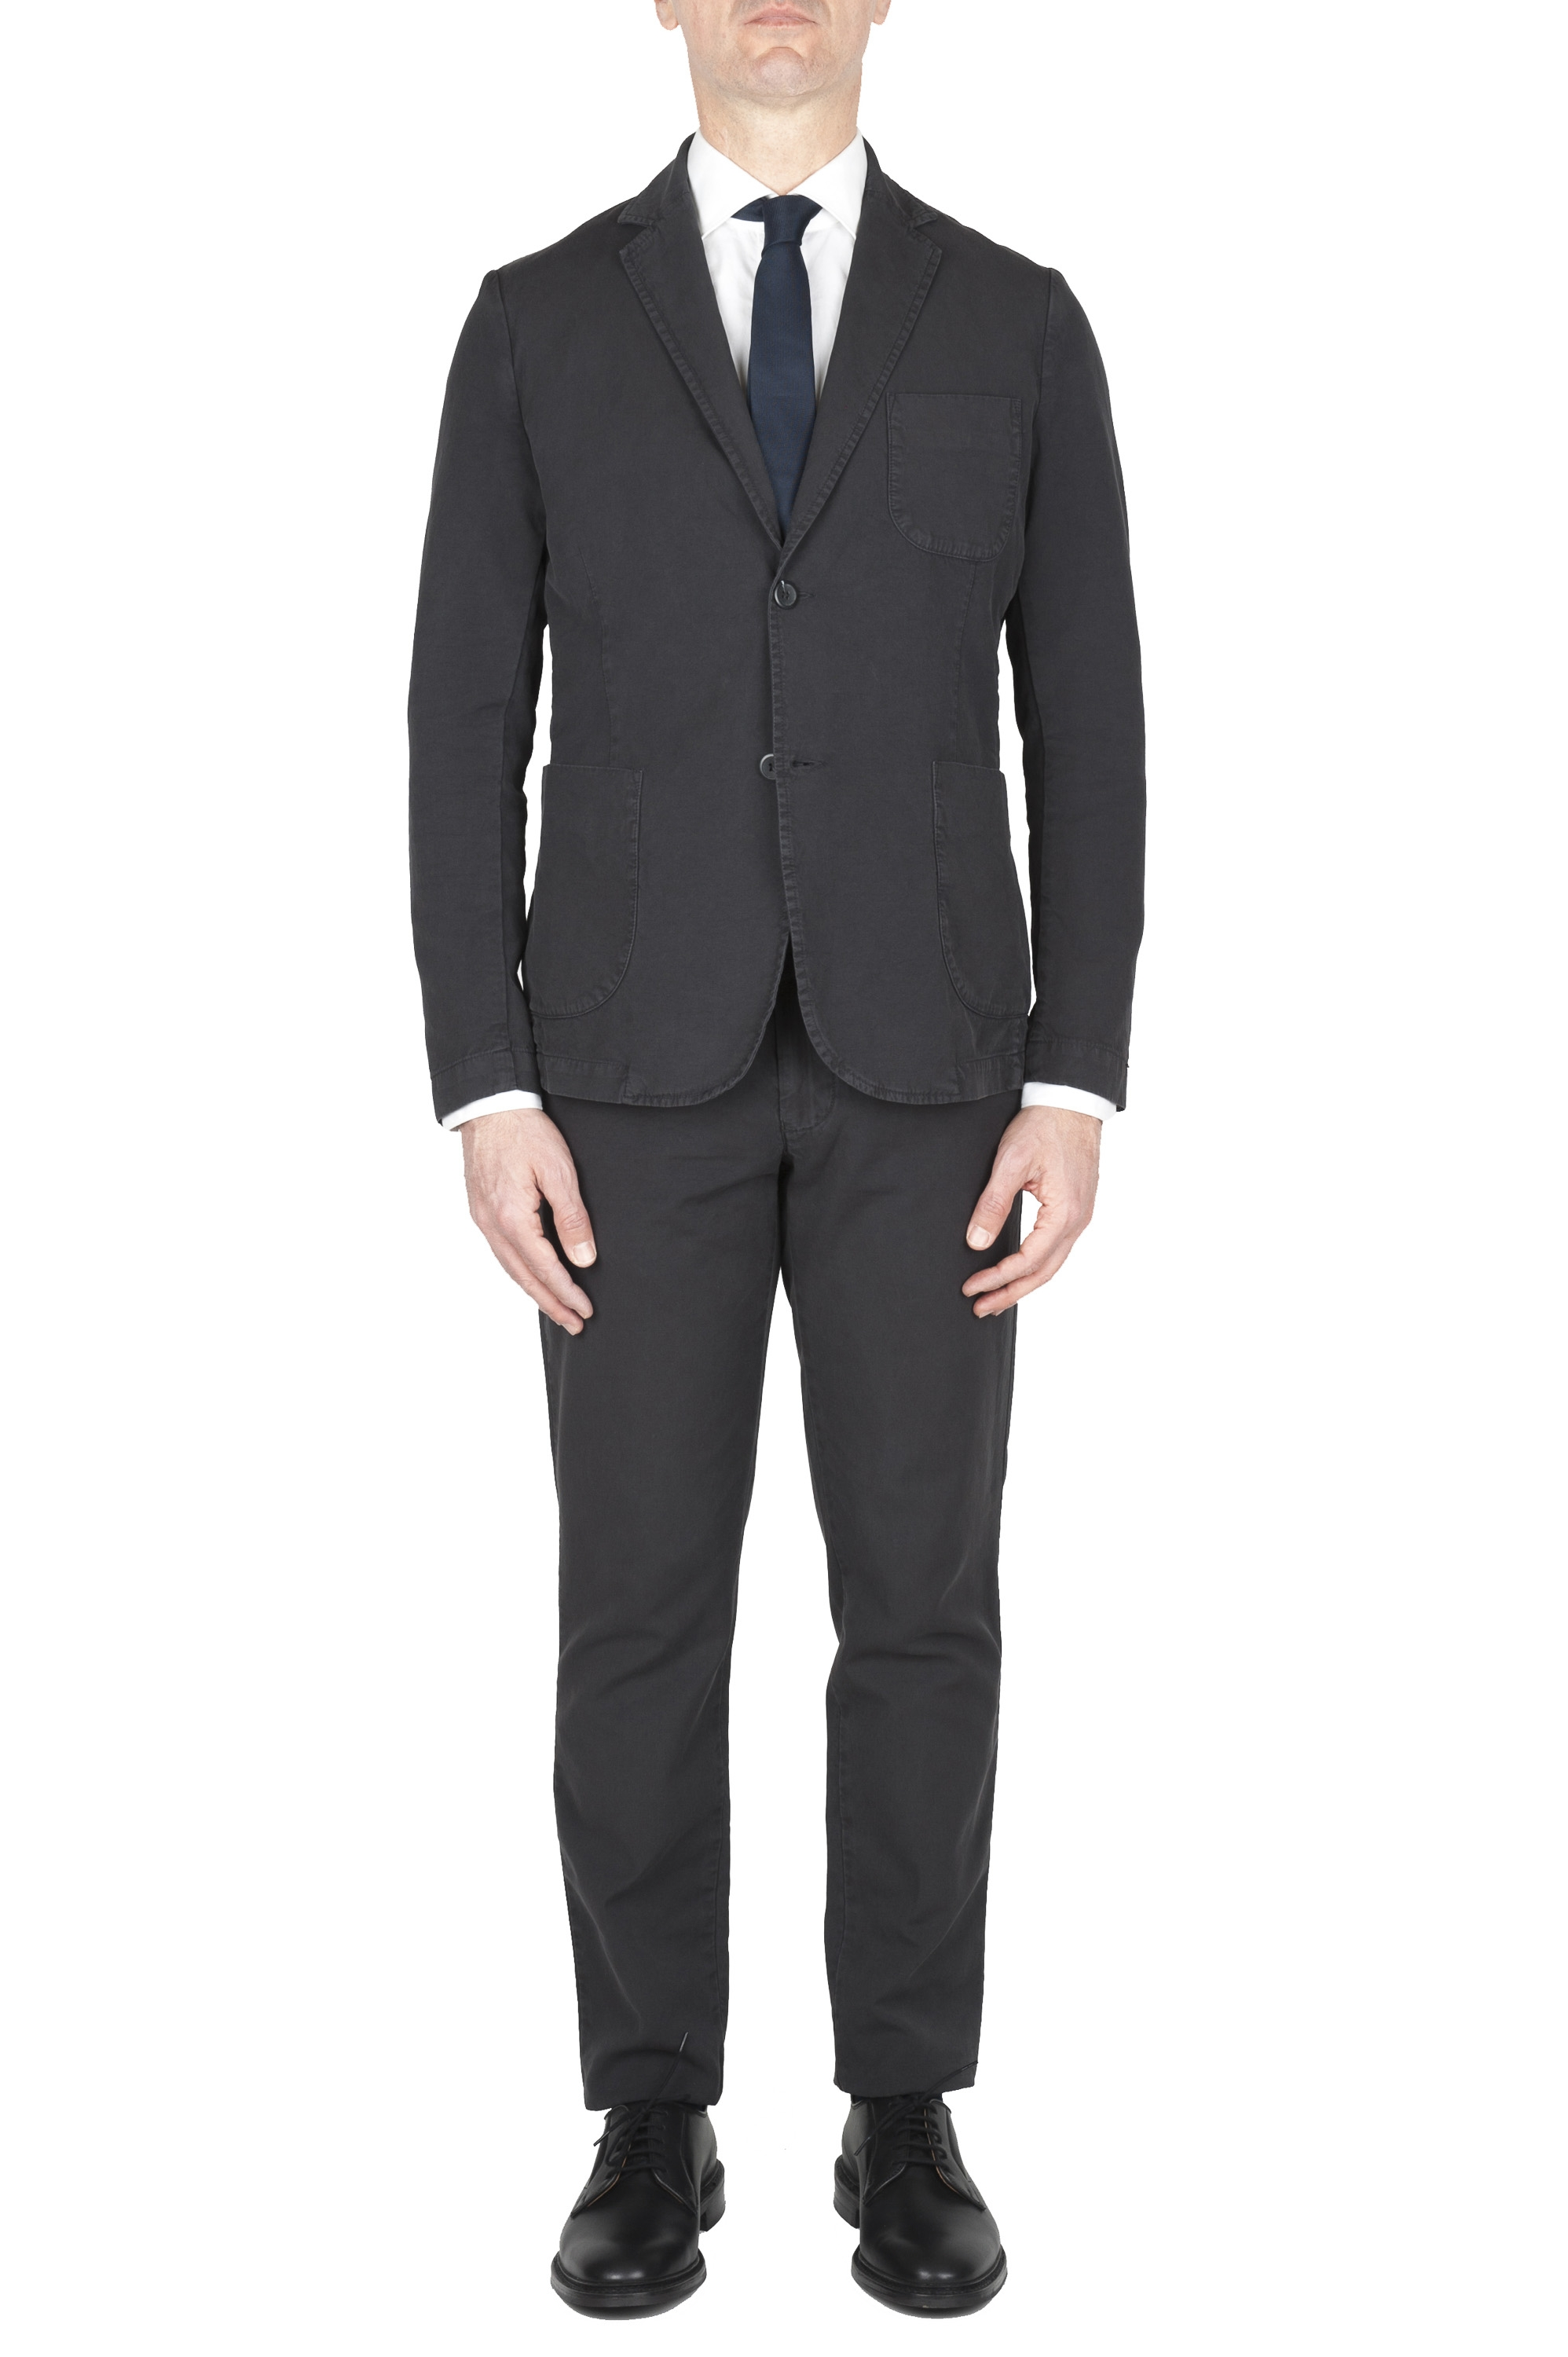 SBU 01741 Anthracite cotton sport suit blazer and trouser 01